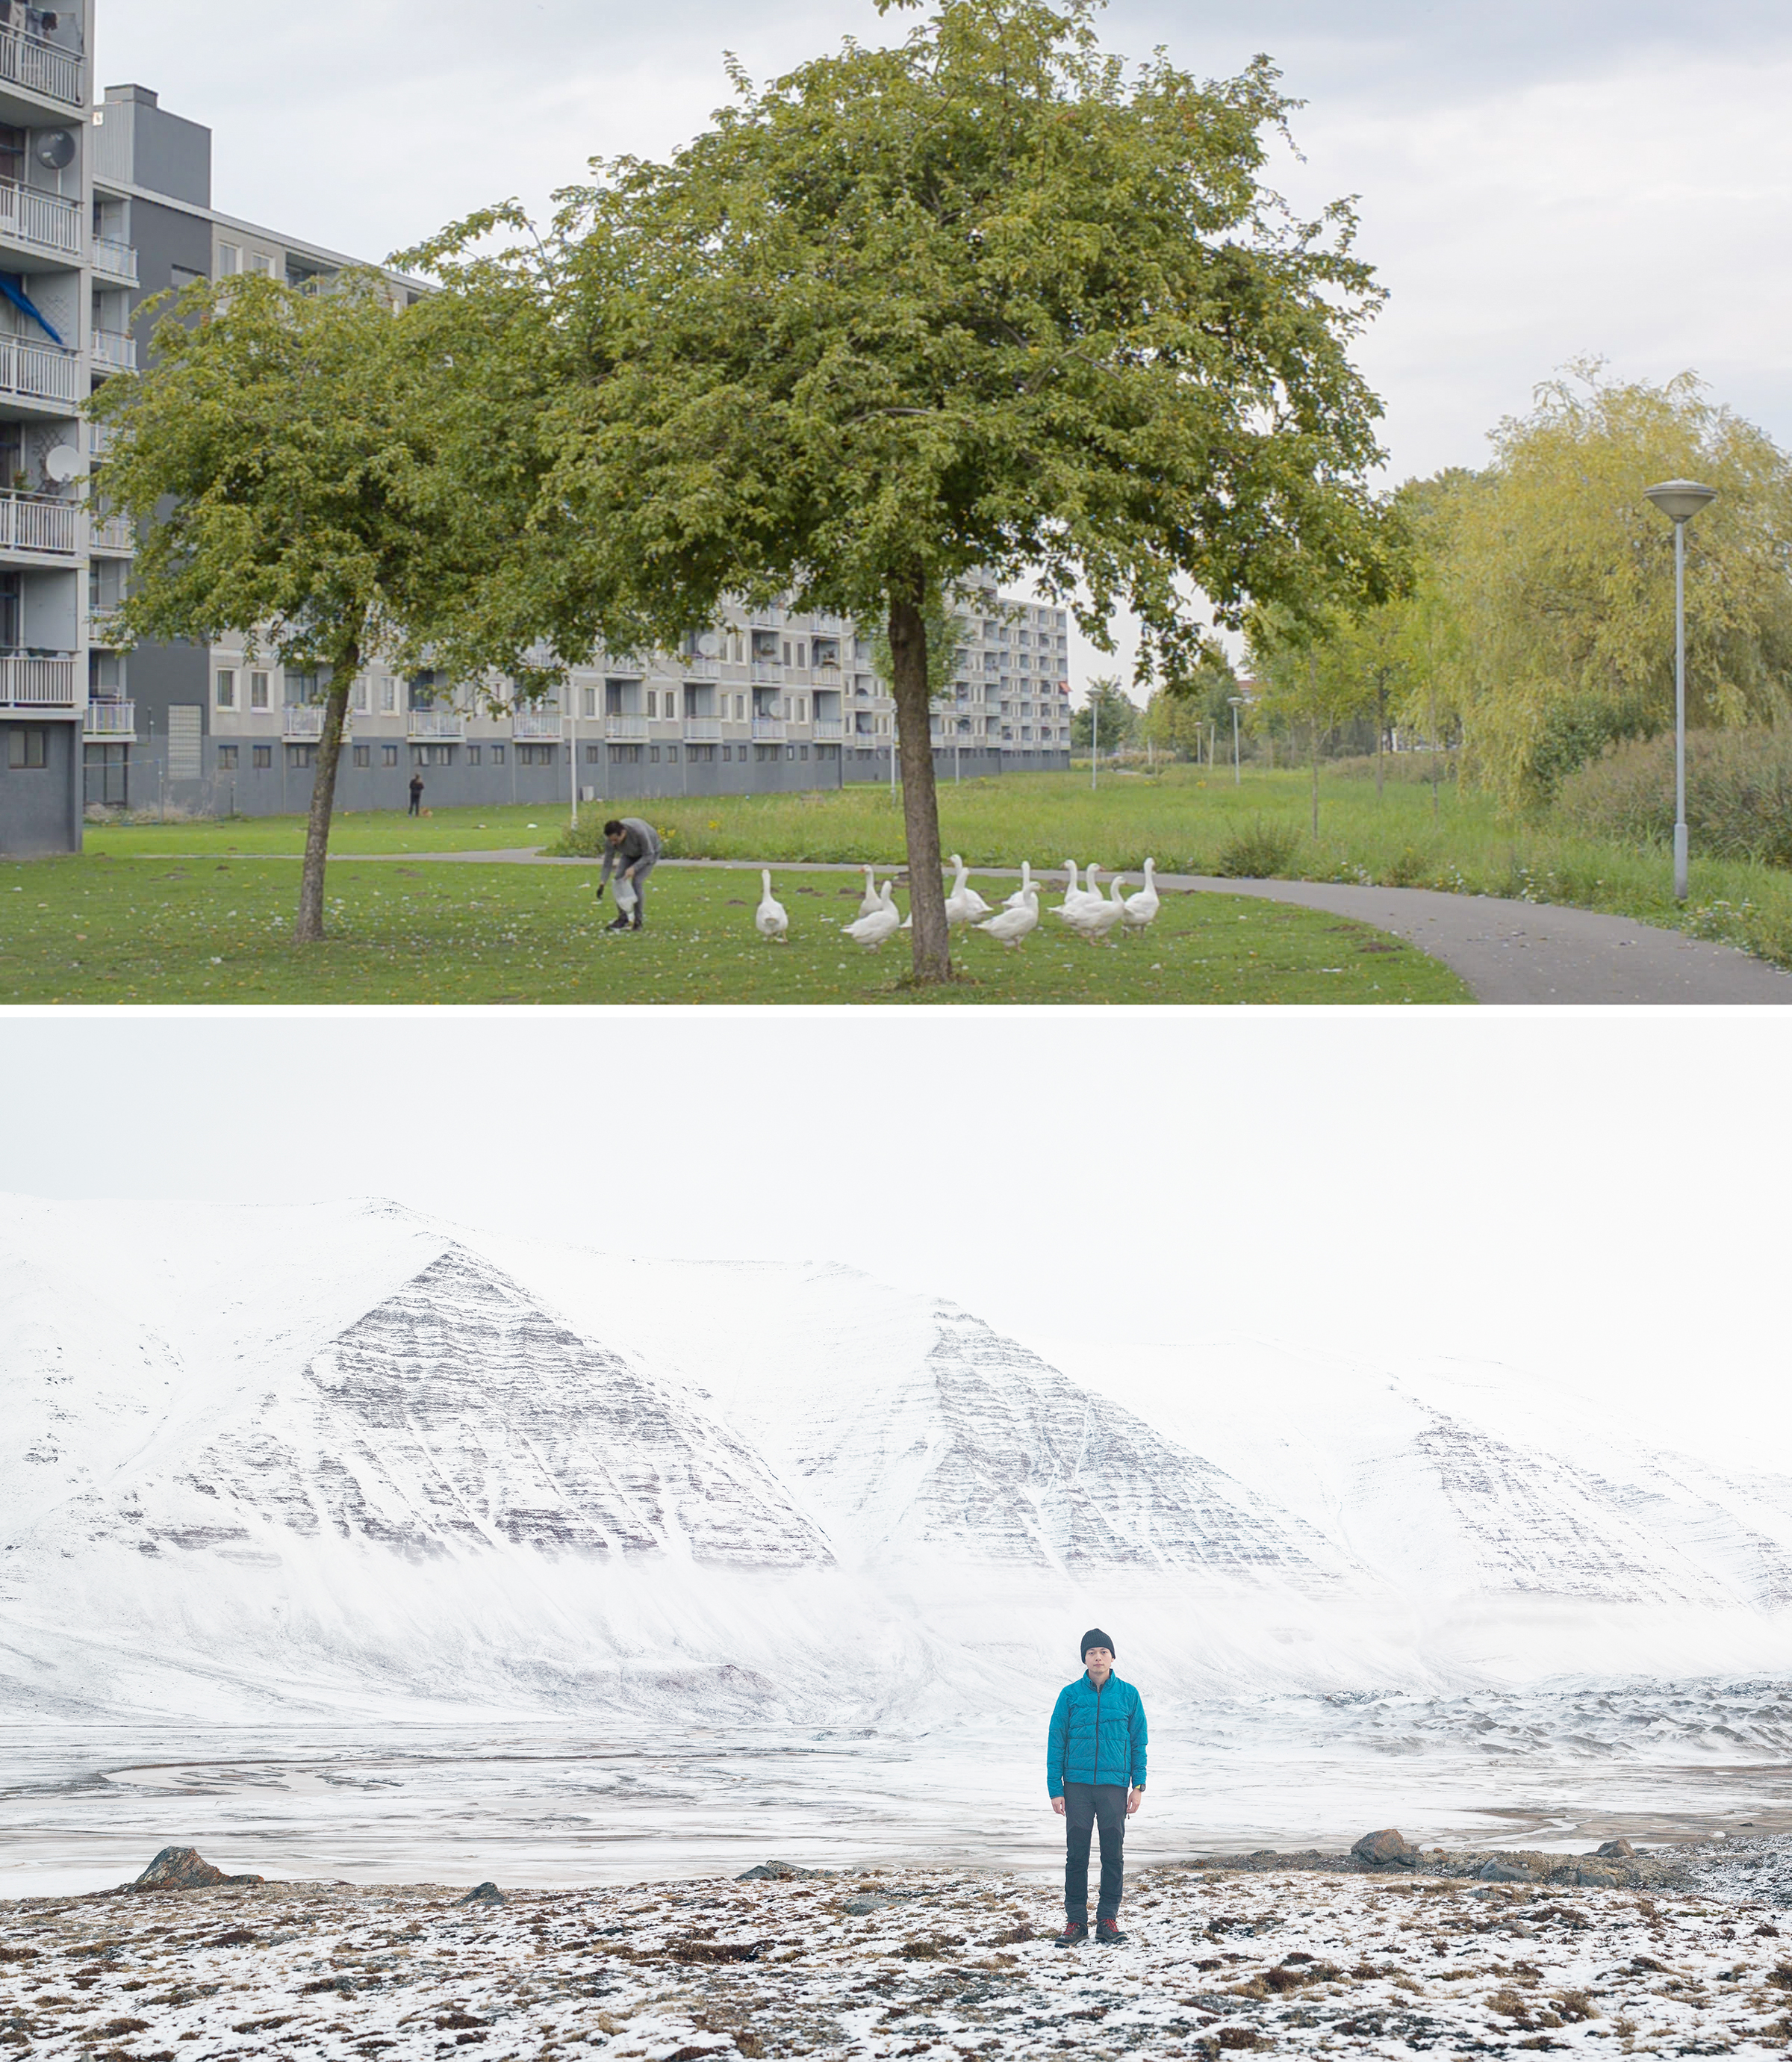 Artist Sheng-Wen Lo collects down feathers (top) in his home city of Breda, Netherlands. A self-portrait (bottom) of Lo hiking in the Arctic in a jacket filled with down he collected. Photos: From Down (2017), video stills; ©Sheng-Wen Lo